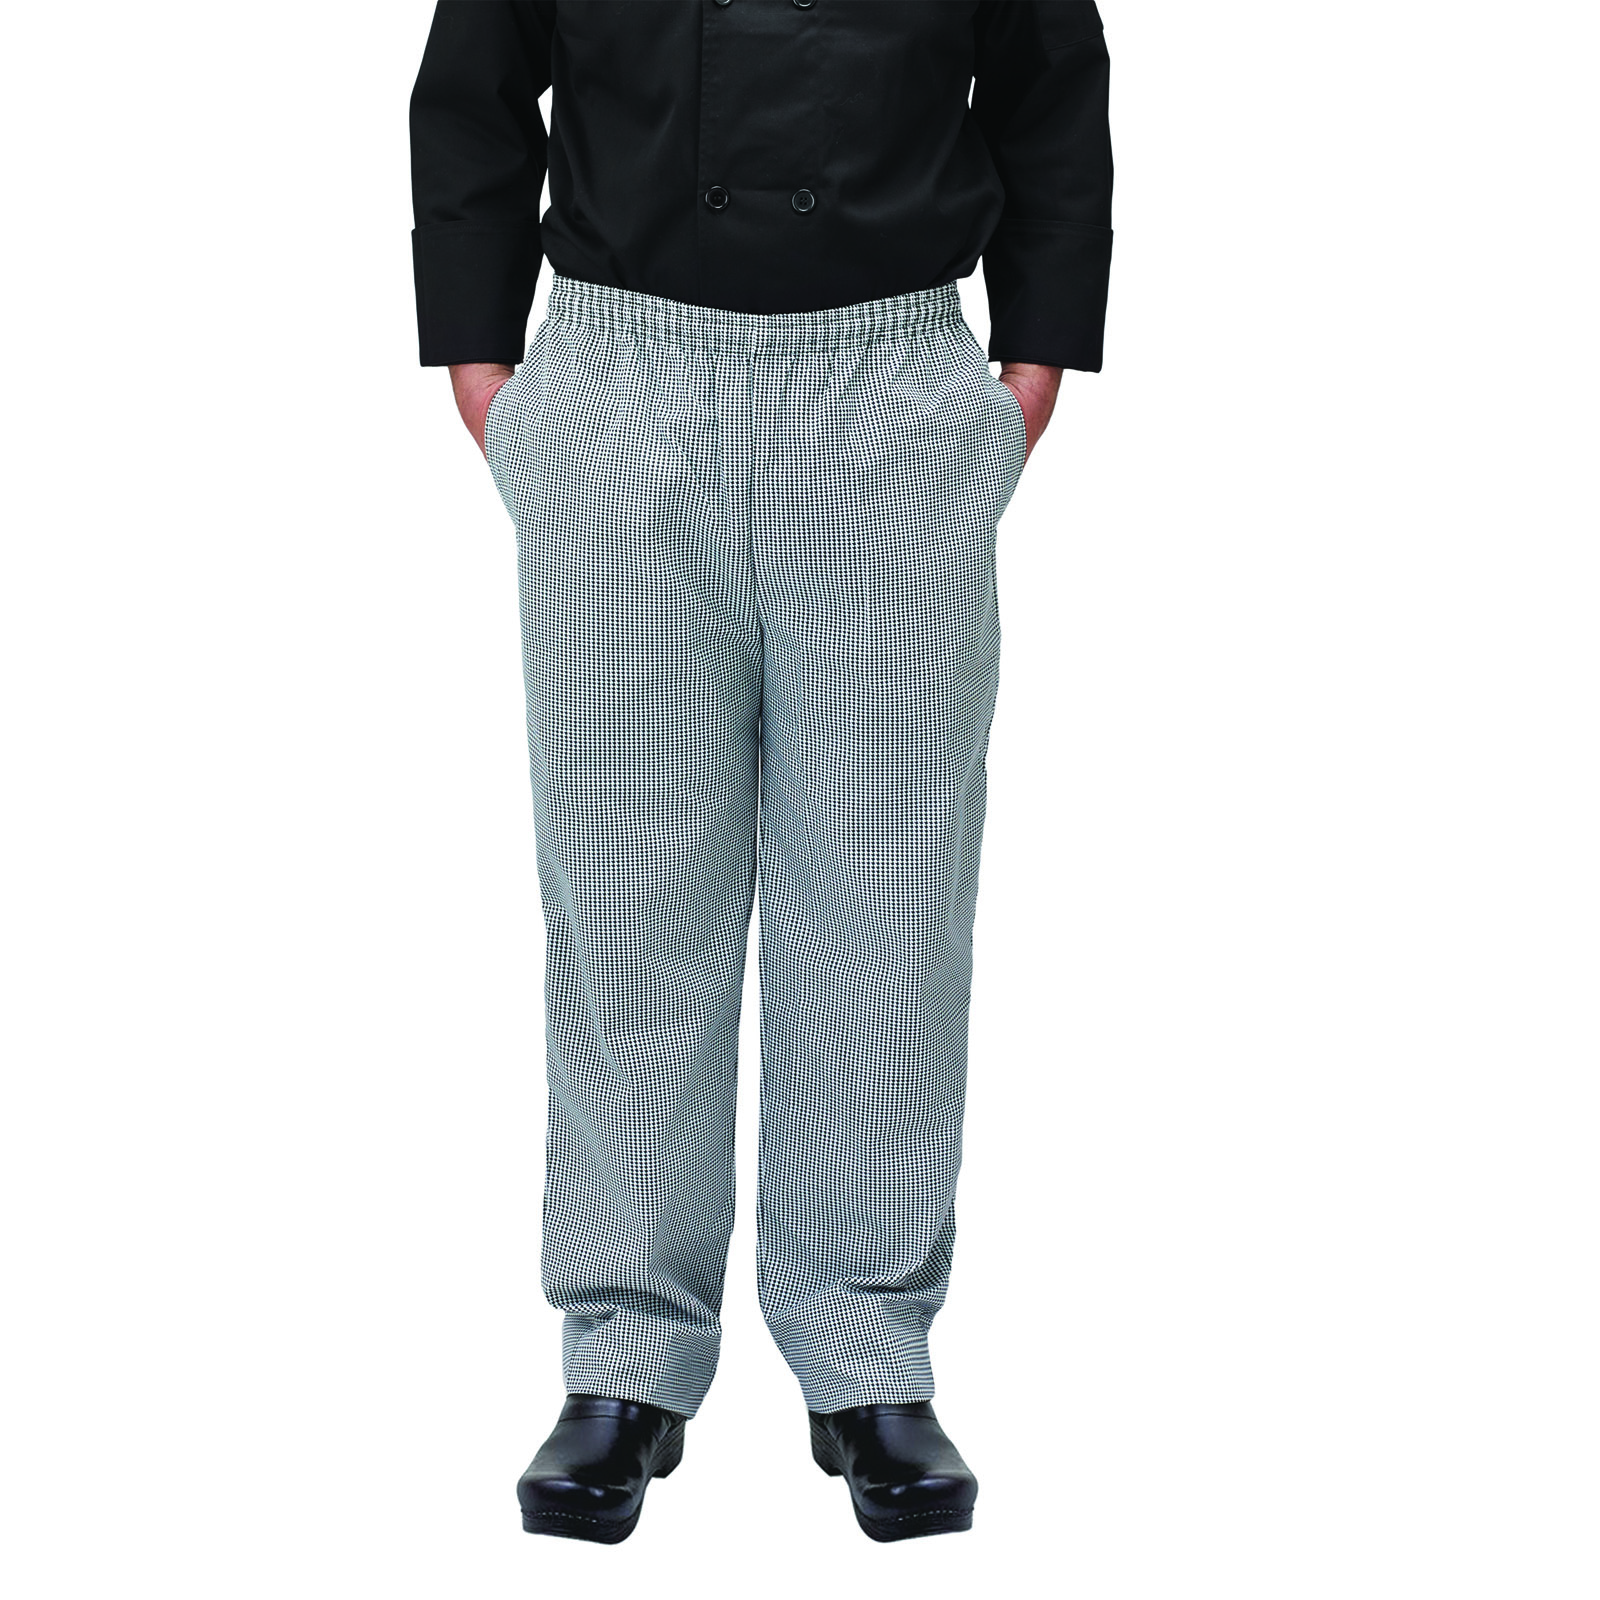 Winco UNF-4KXL chef's pants